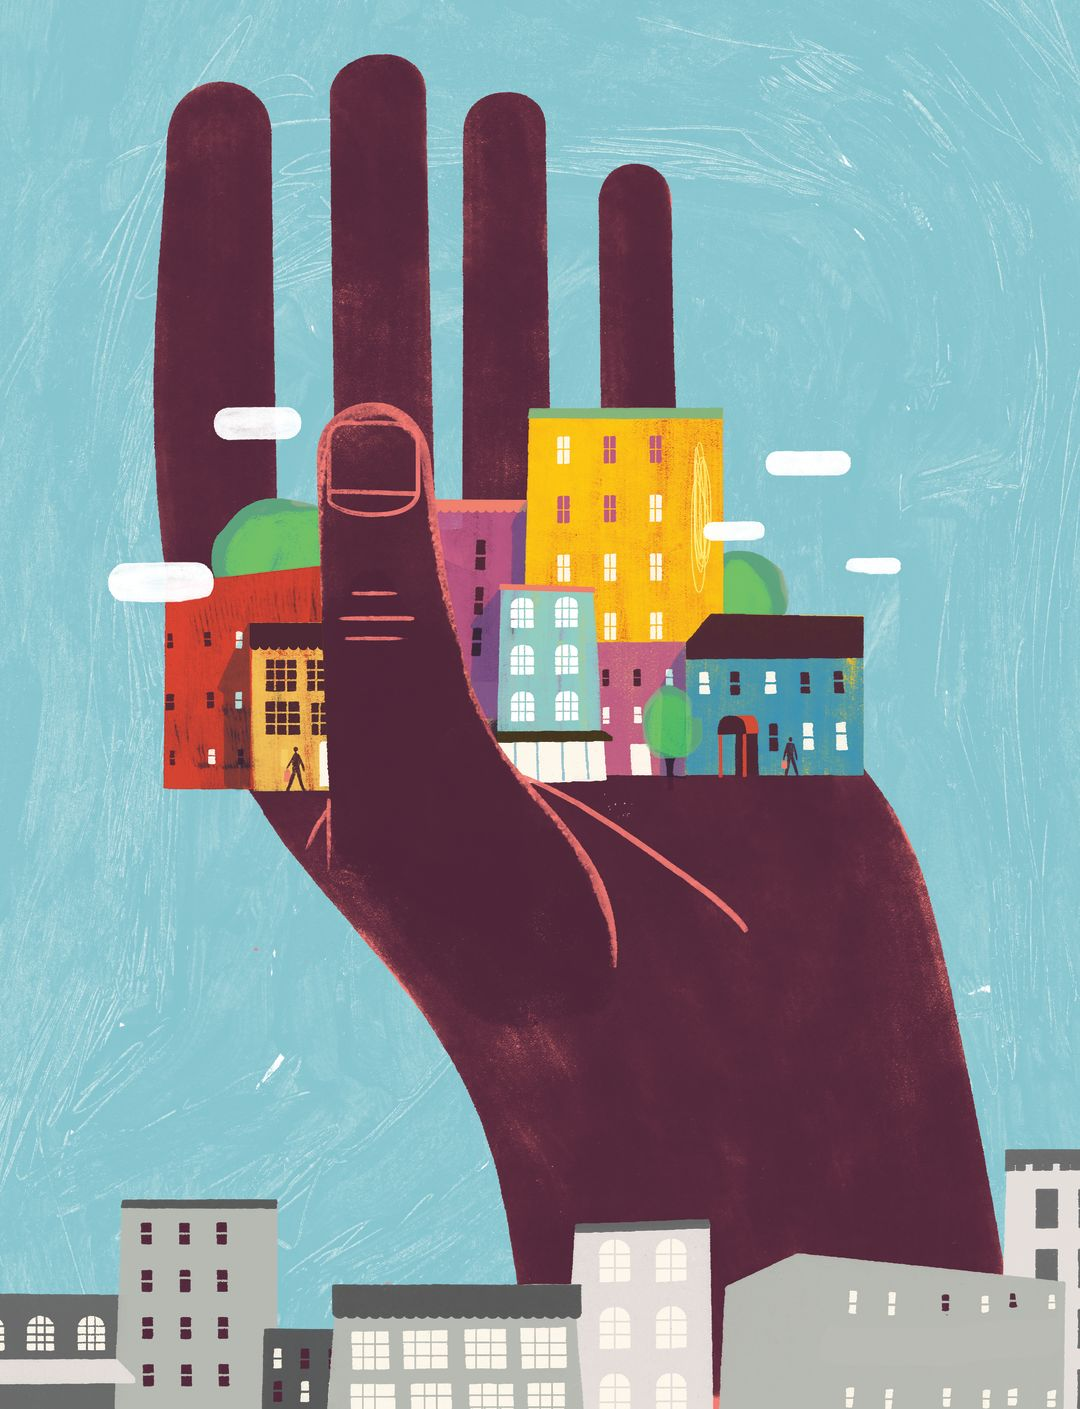 Pomo 0716 gentrification illustration hand house keith negley a3rkh2